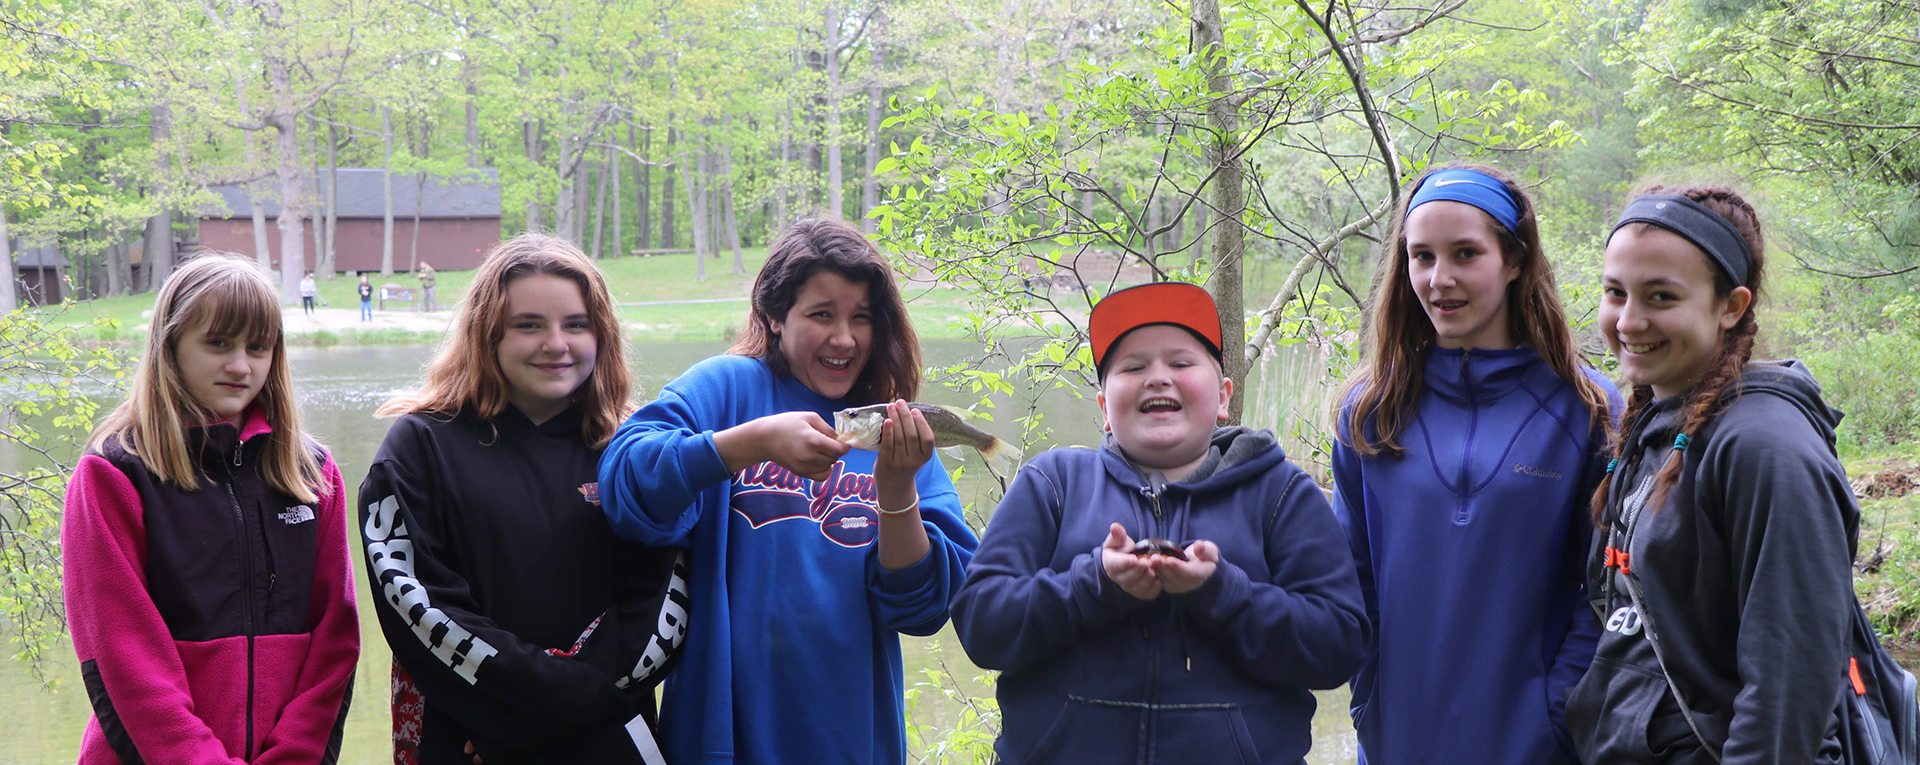 6th grade students at camp bristol hills.  girl and boy holding frog and turtle